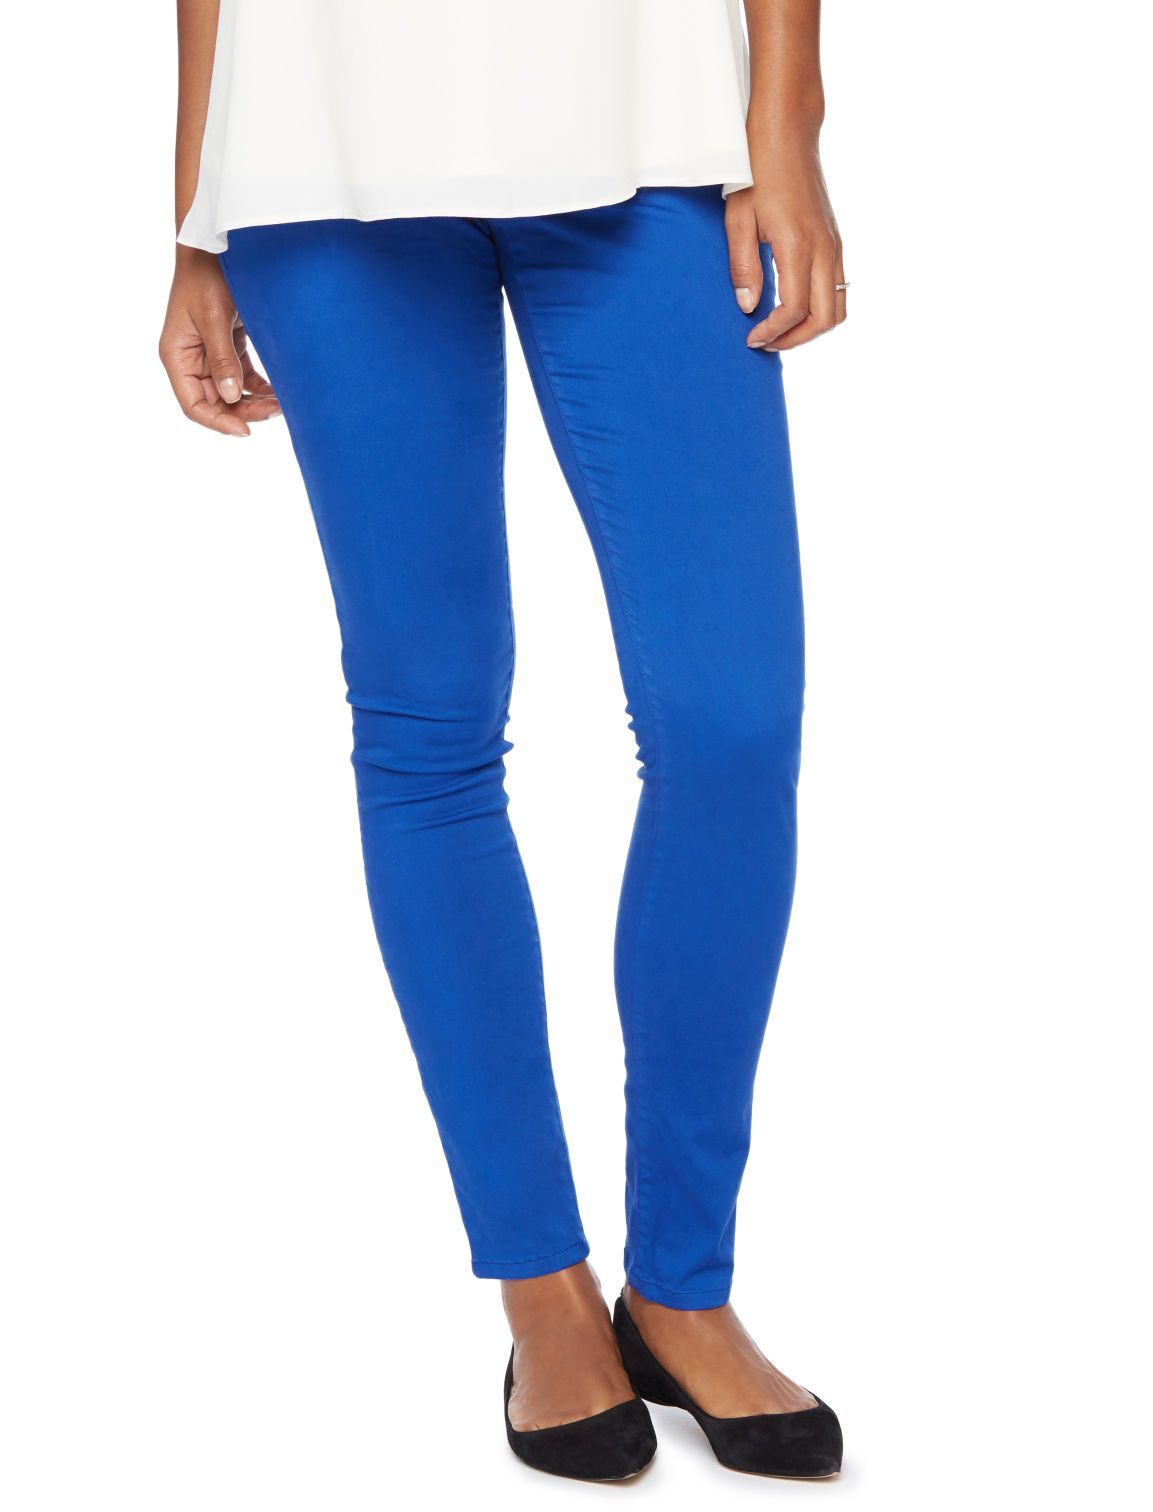 19b1d66fb1c93 Stand out in this blue hue | Secret fit belly sateen 5 pocket skinny leg  maternity pants by Motherhood Maternity